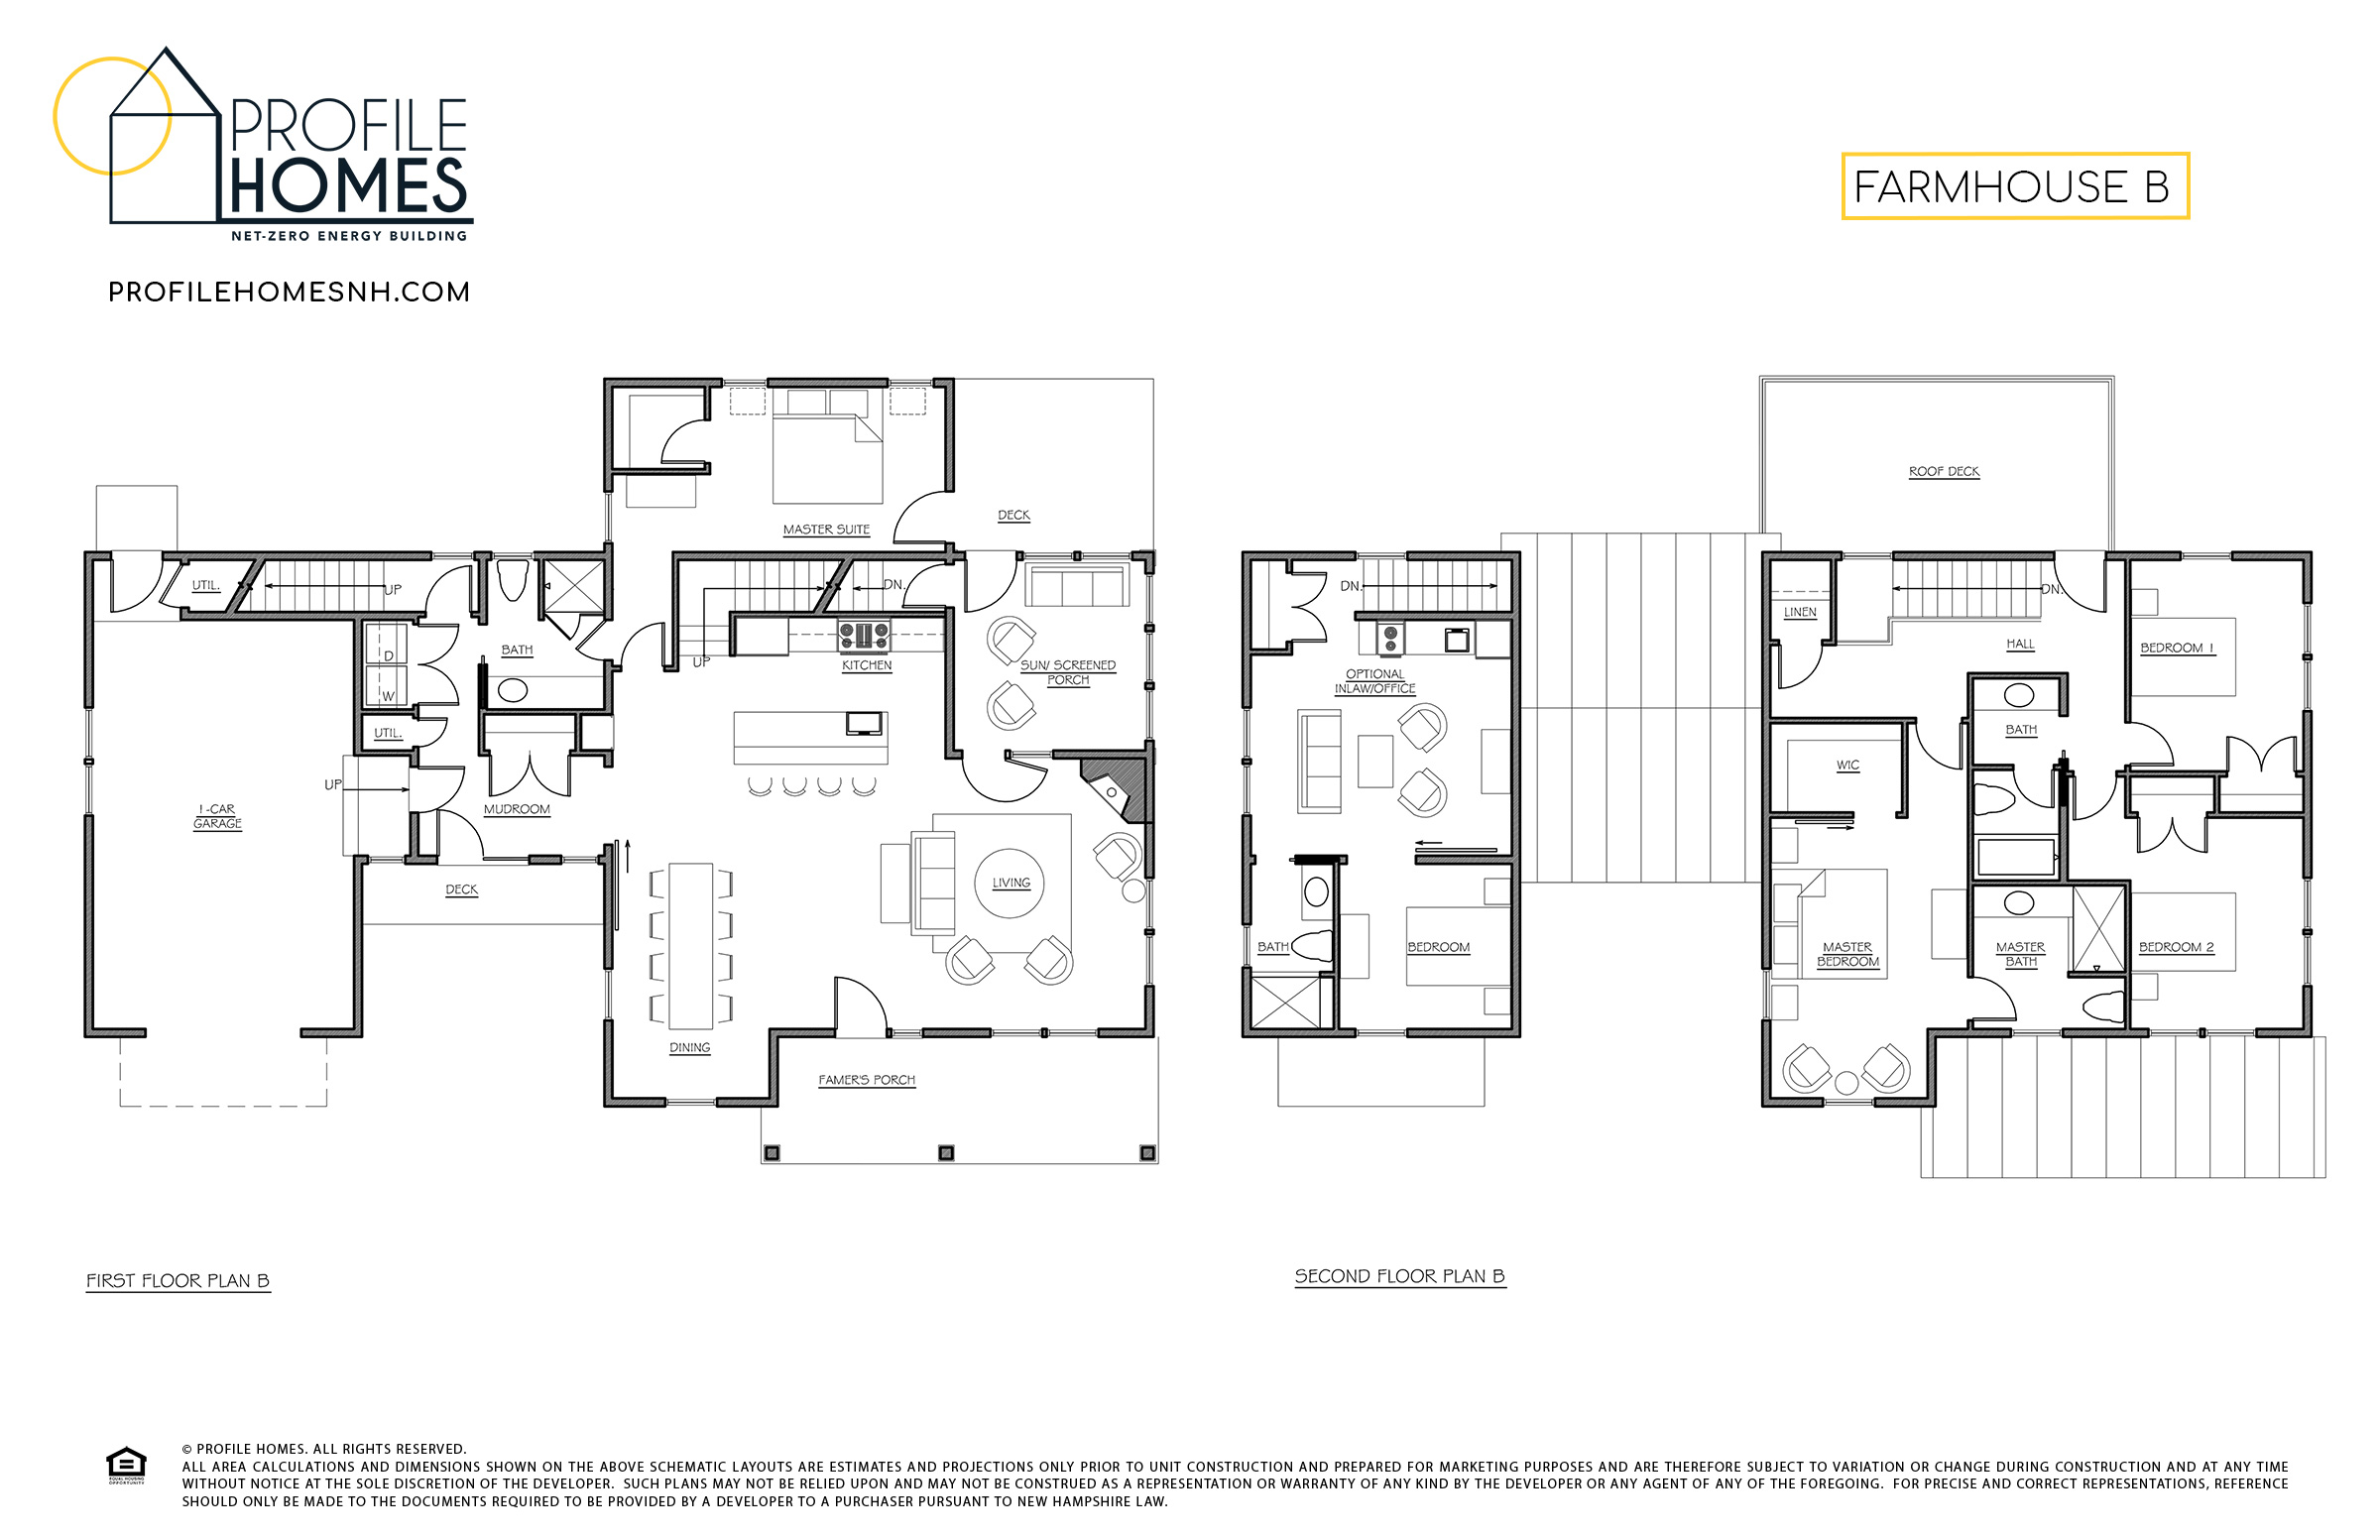 Profile Homes Floorplan Farmhouse B © 2018 Profile Homes